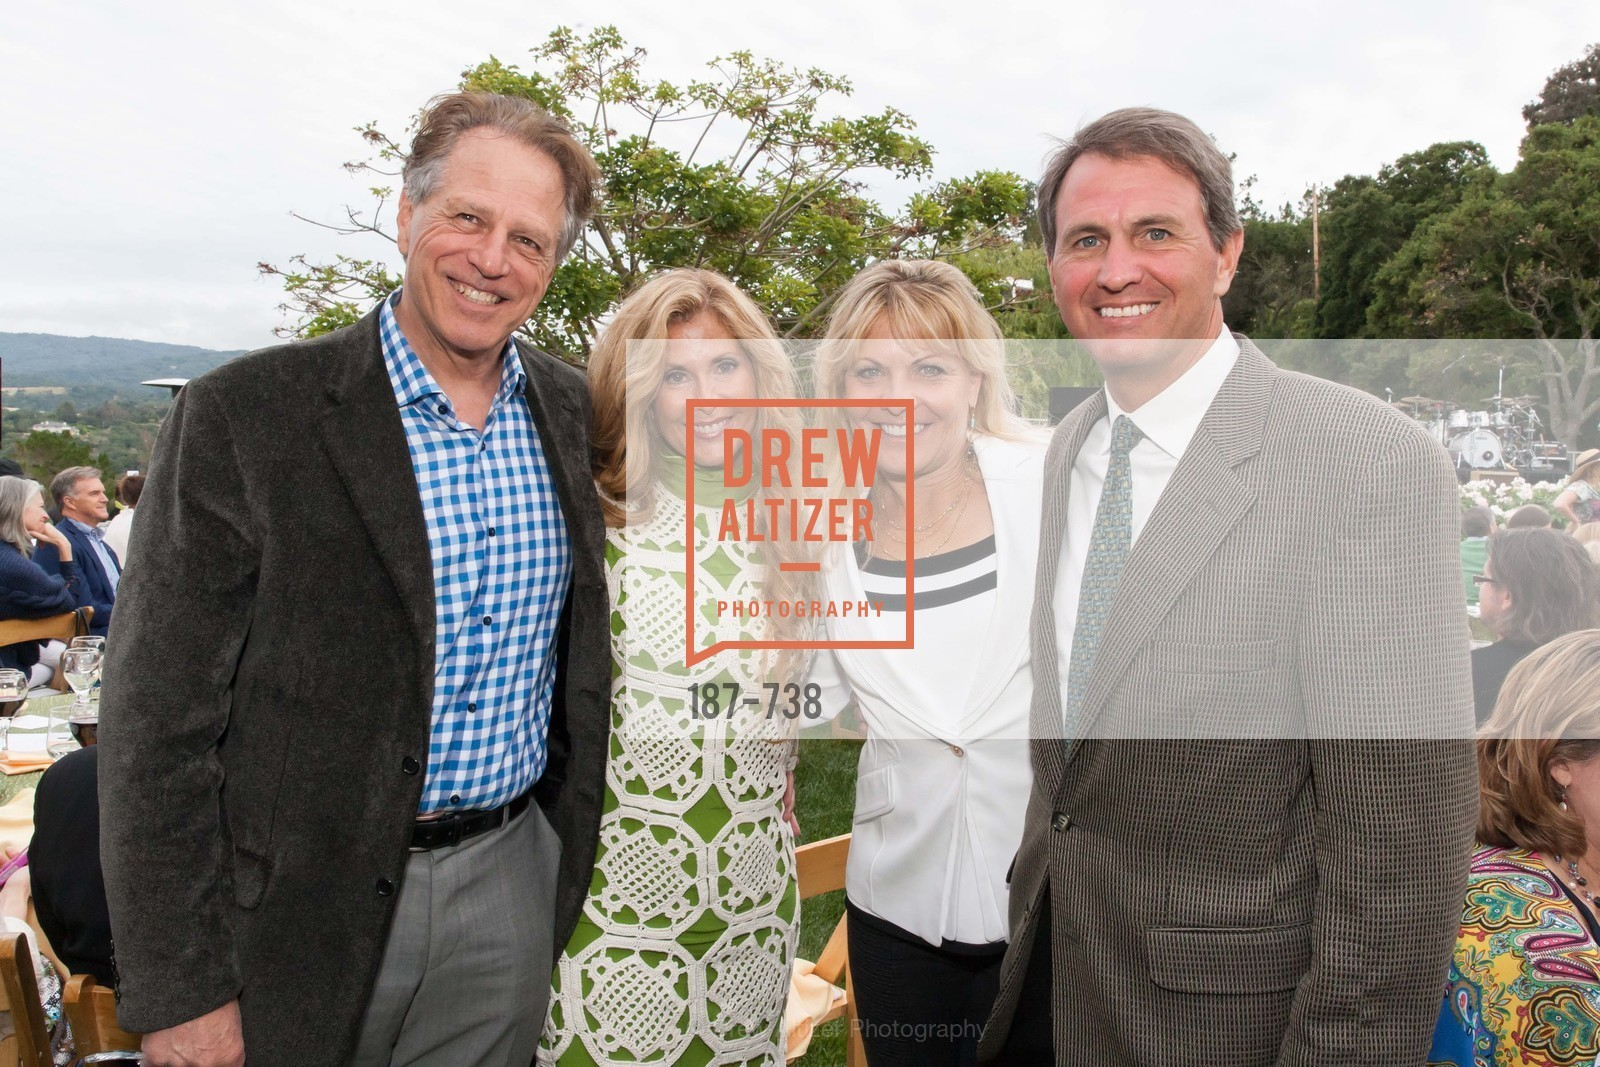 Bob Klein, Sherry Cagan, Danielle Klein, Laird Cagan, LymeAid 2015, US, May 17th, 2015,Drew Altizer, Drew Altizer Photography, full-service agency, private events, San Francisco photographer, photographer california